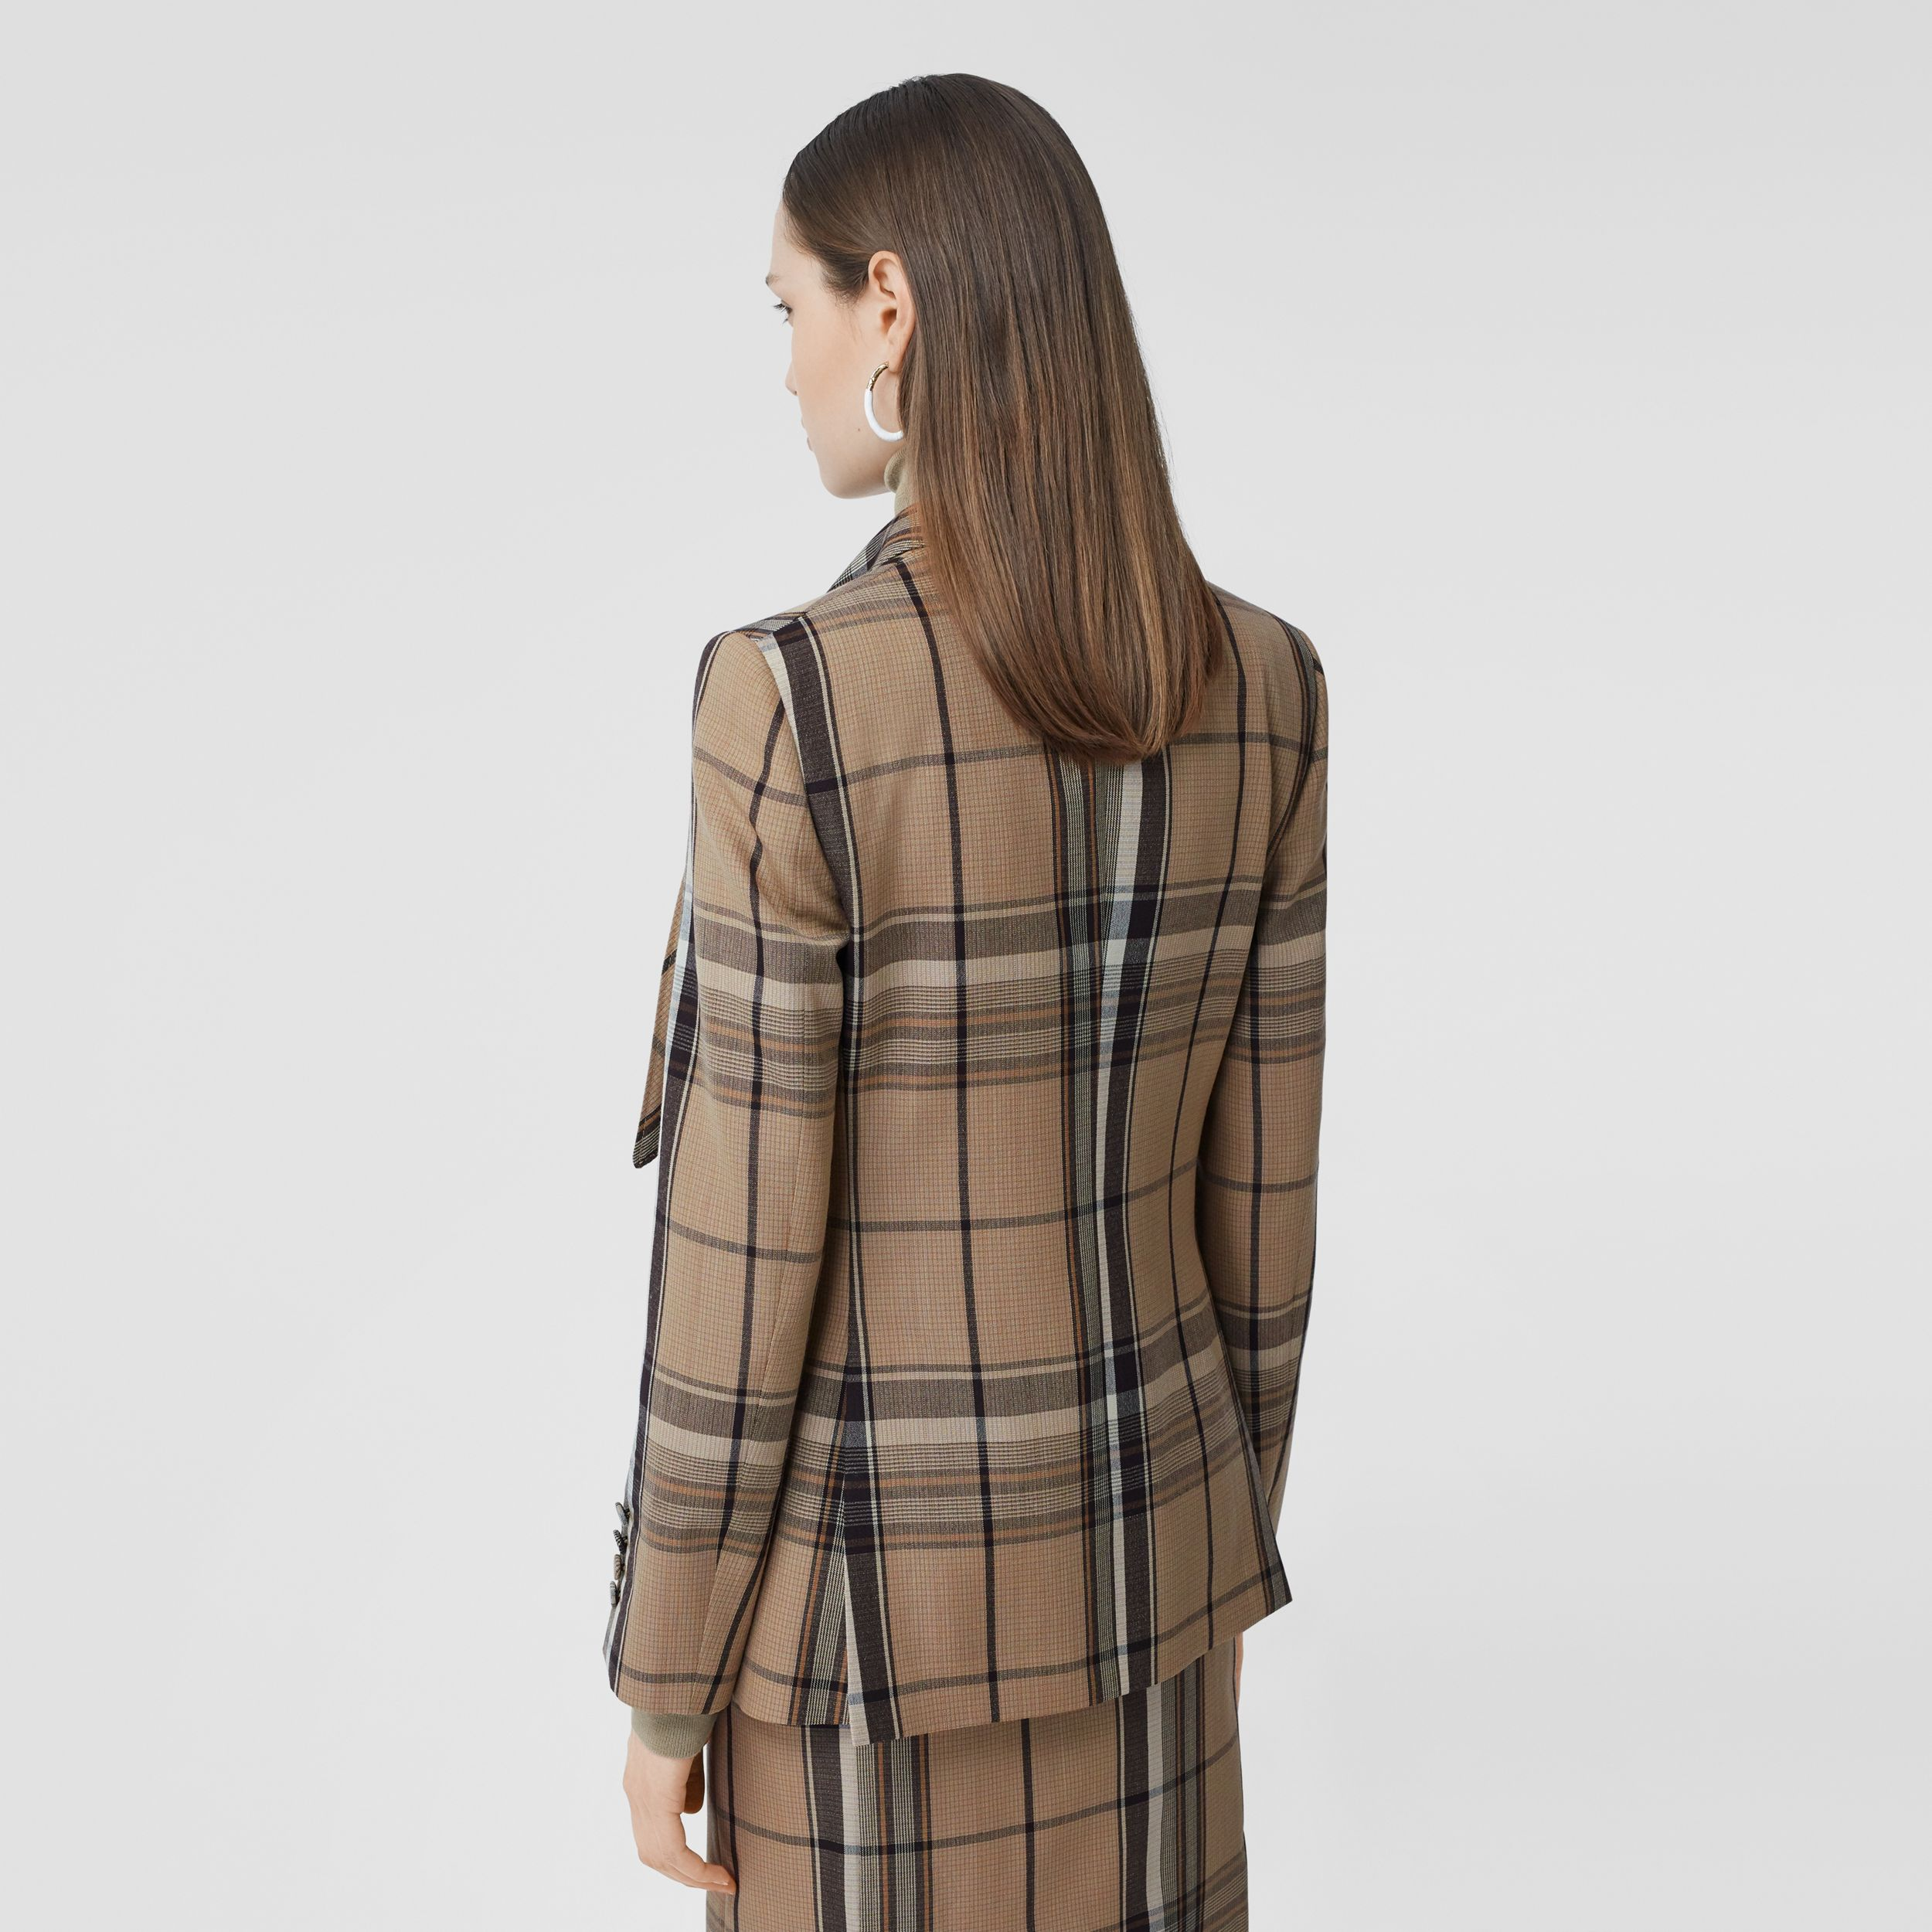 Knot Detail Check Wool Tailored Jacket - Women | Burberry - 3